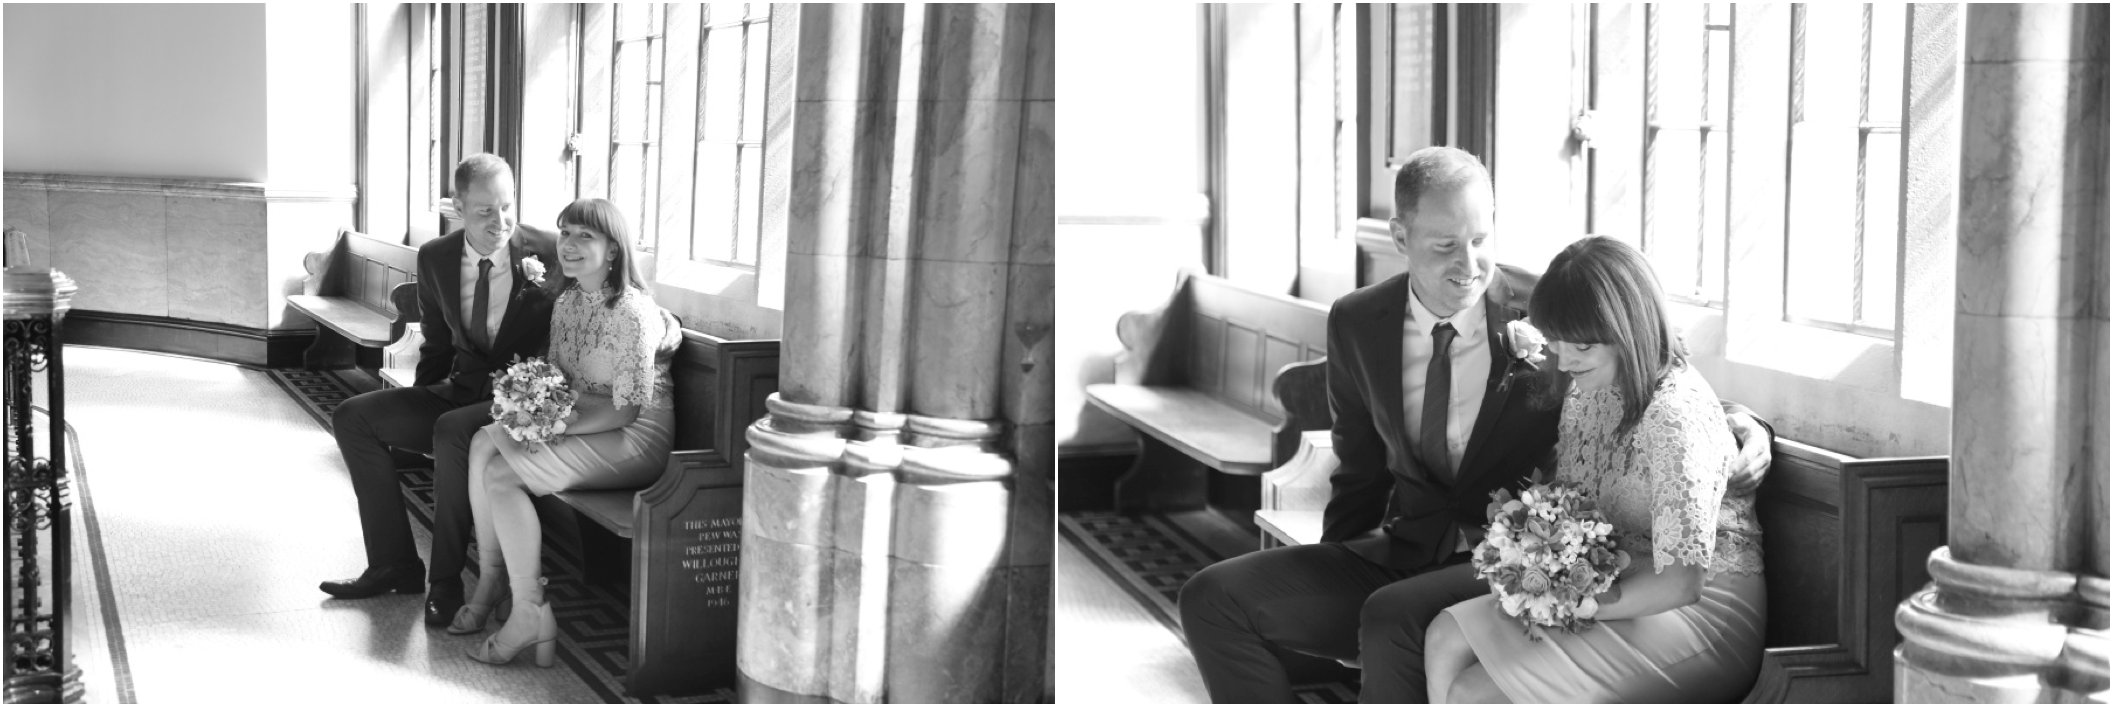 Natural London elopement photography, Black and white